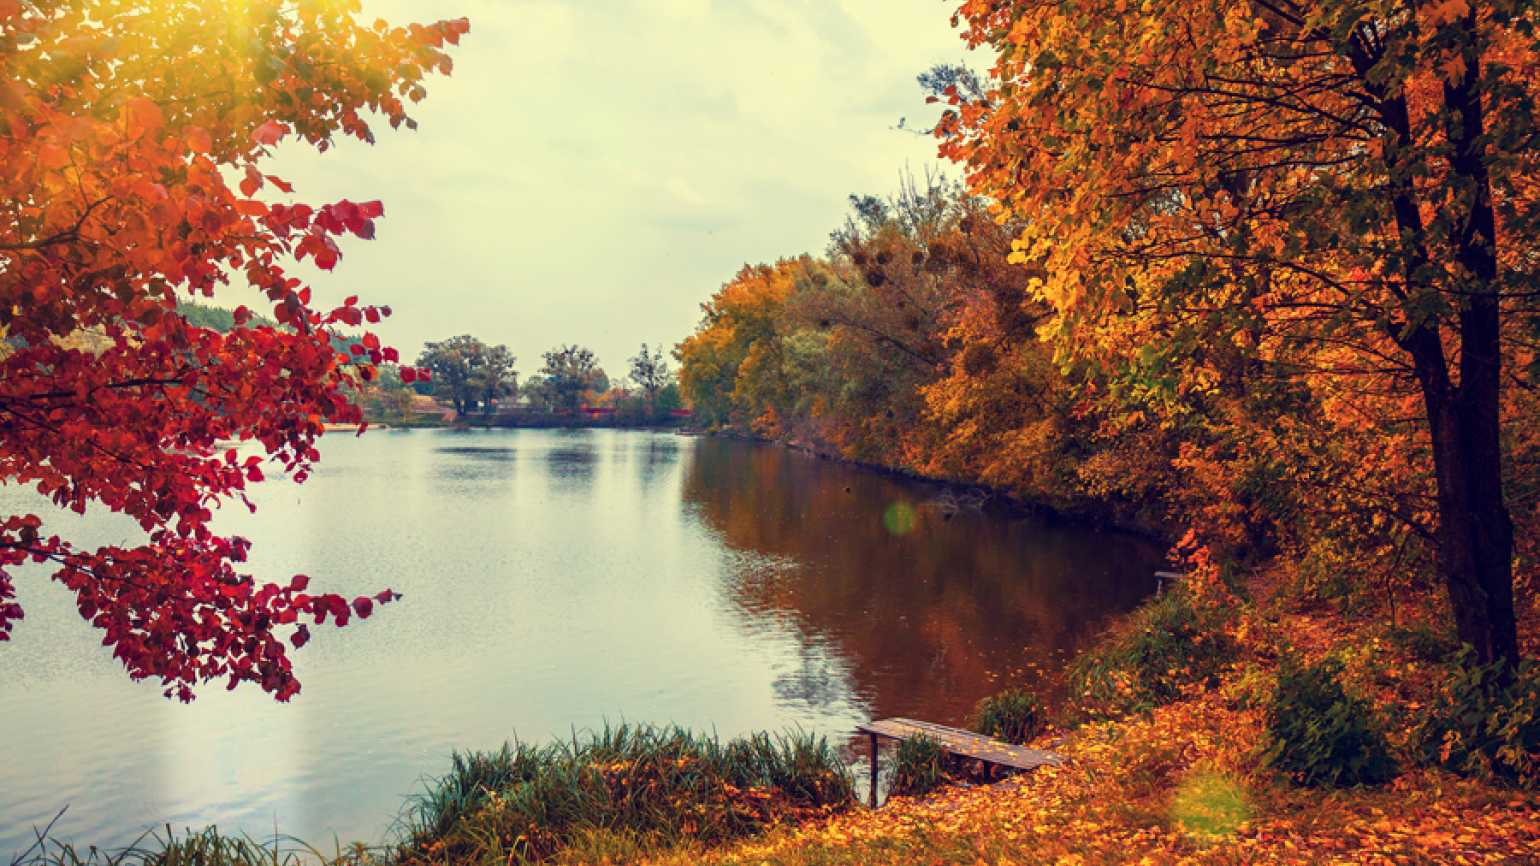 Fall foliage surrounds a lake